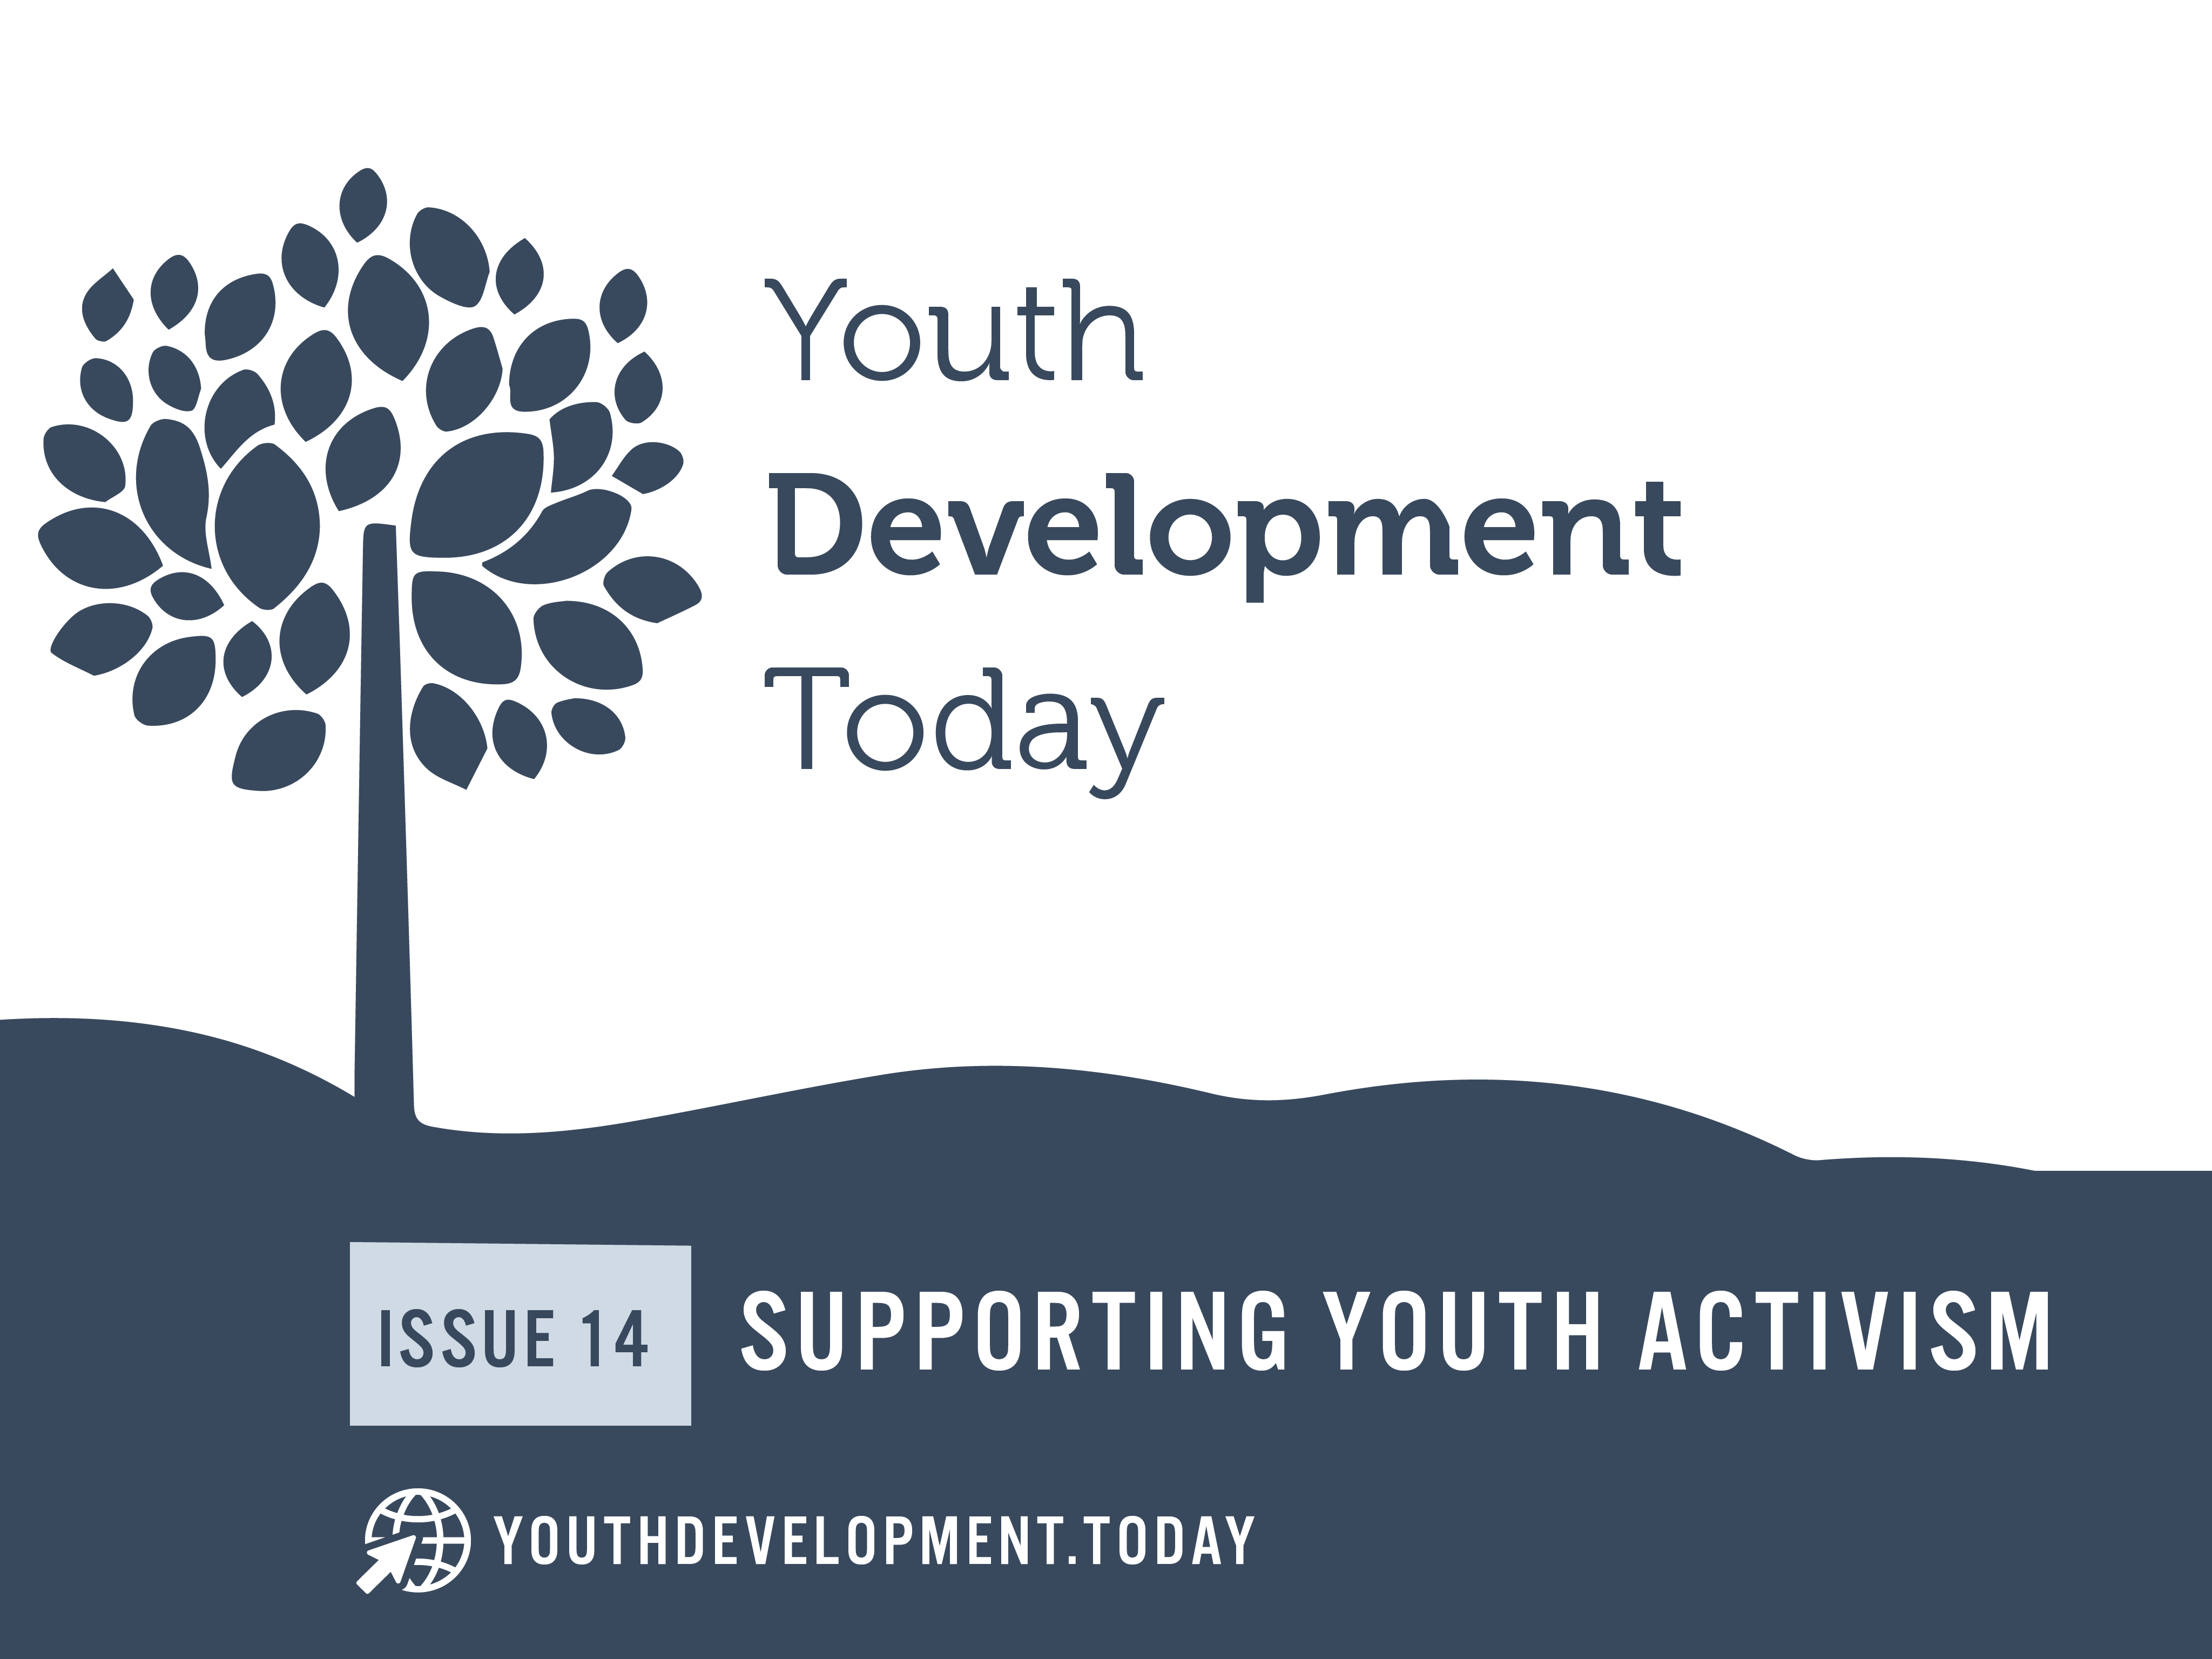 Issue 14: Supporting Youth Activism